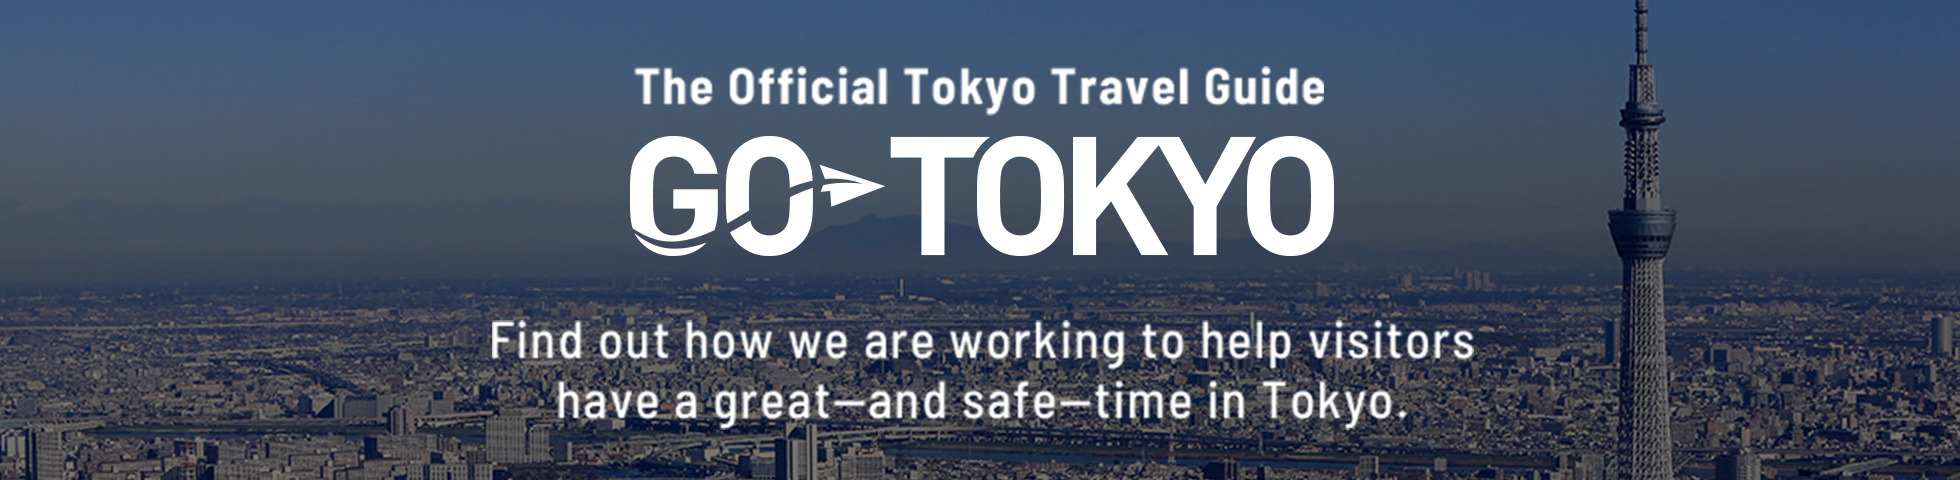 The Official Tokyo Travel Guide Gotokyo Find out how we are working  to help visitors have a great—and safe—time in Tokyo.